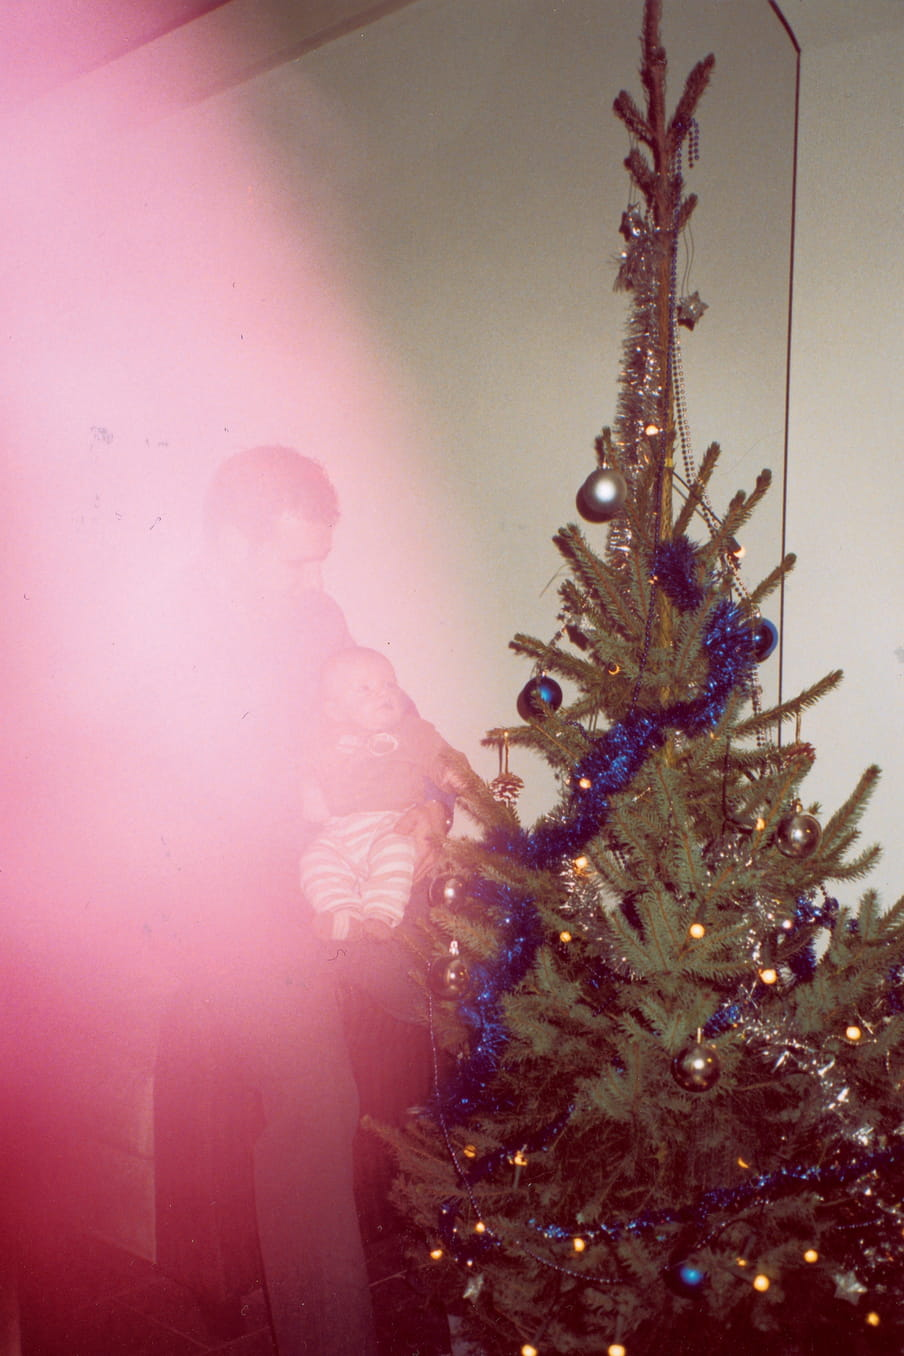 Photograph of a man holding a child next to a christmas three, a red light flare blocking the view of the man with child.